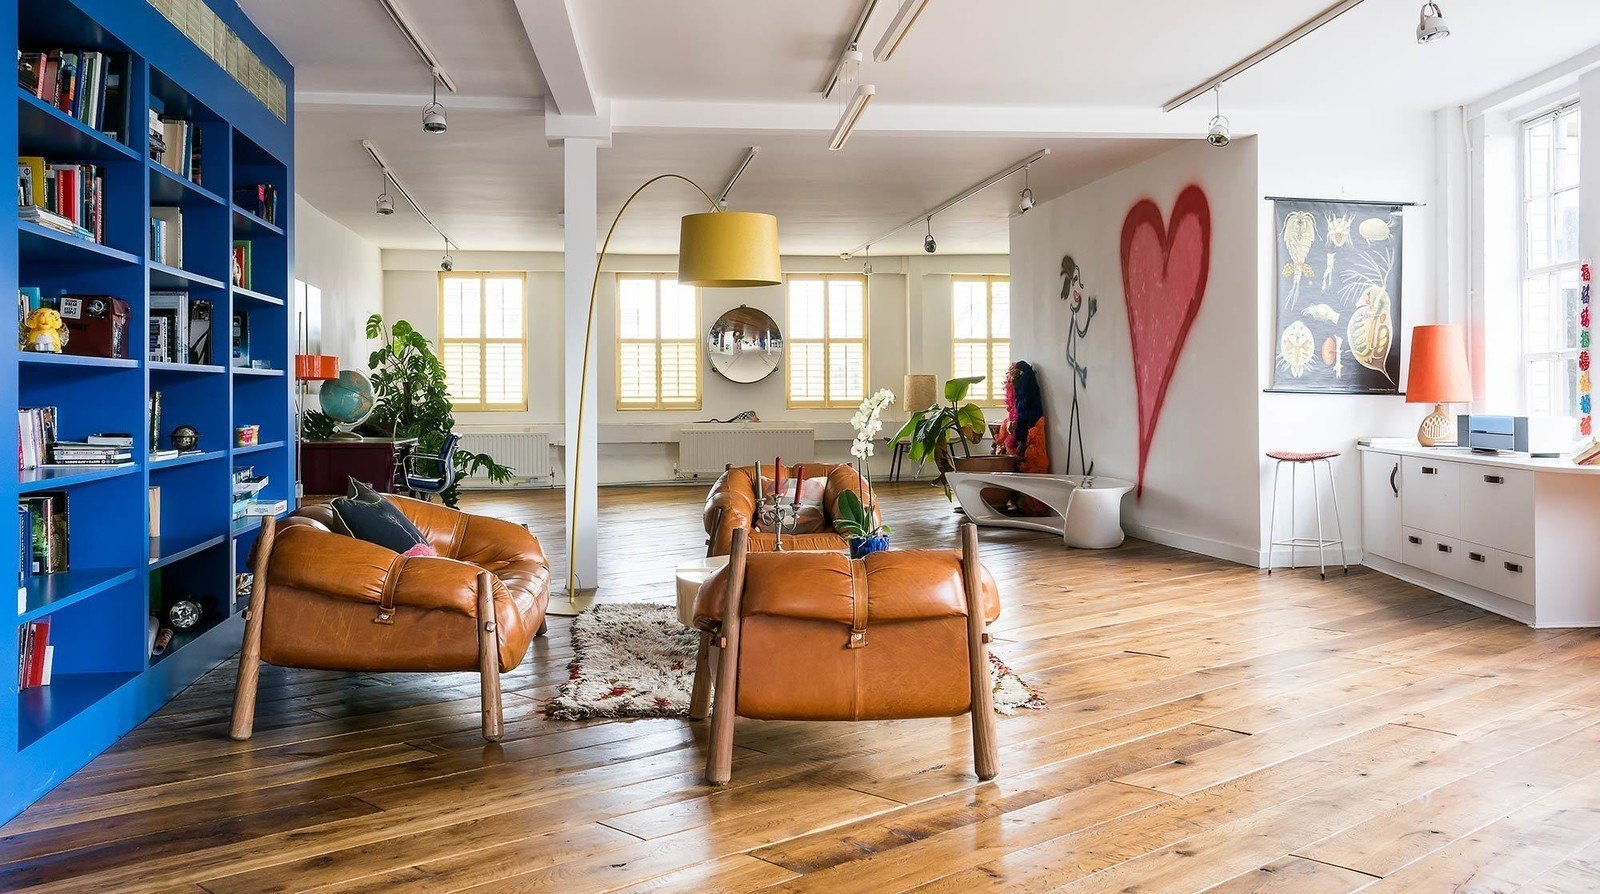 Indoor graffiti, wacky artwork, colors that pop, a red  Photo 10 of 11 in 10 Modern Homes in London